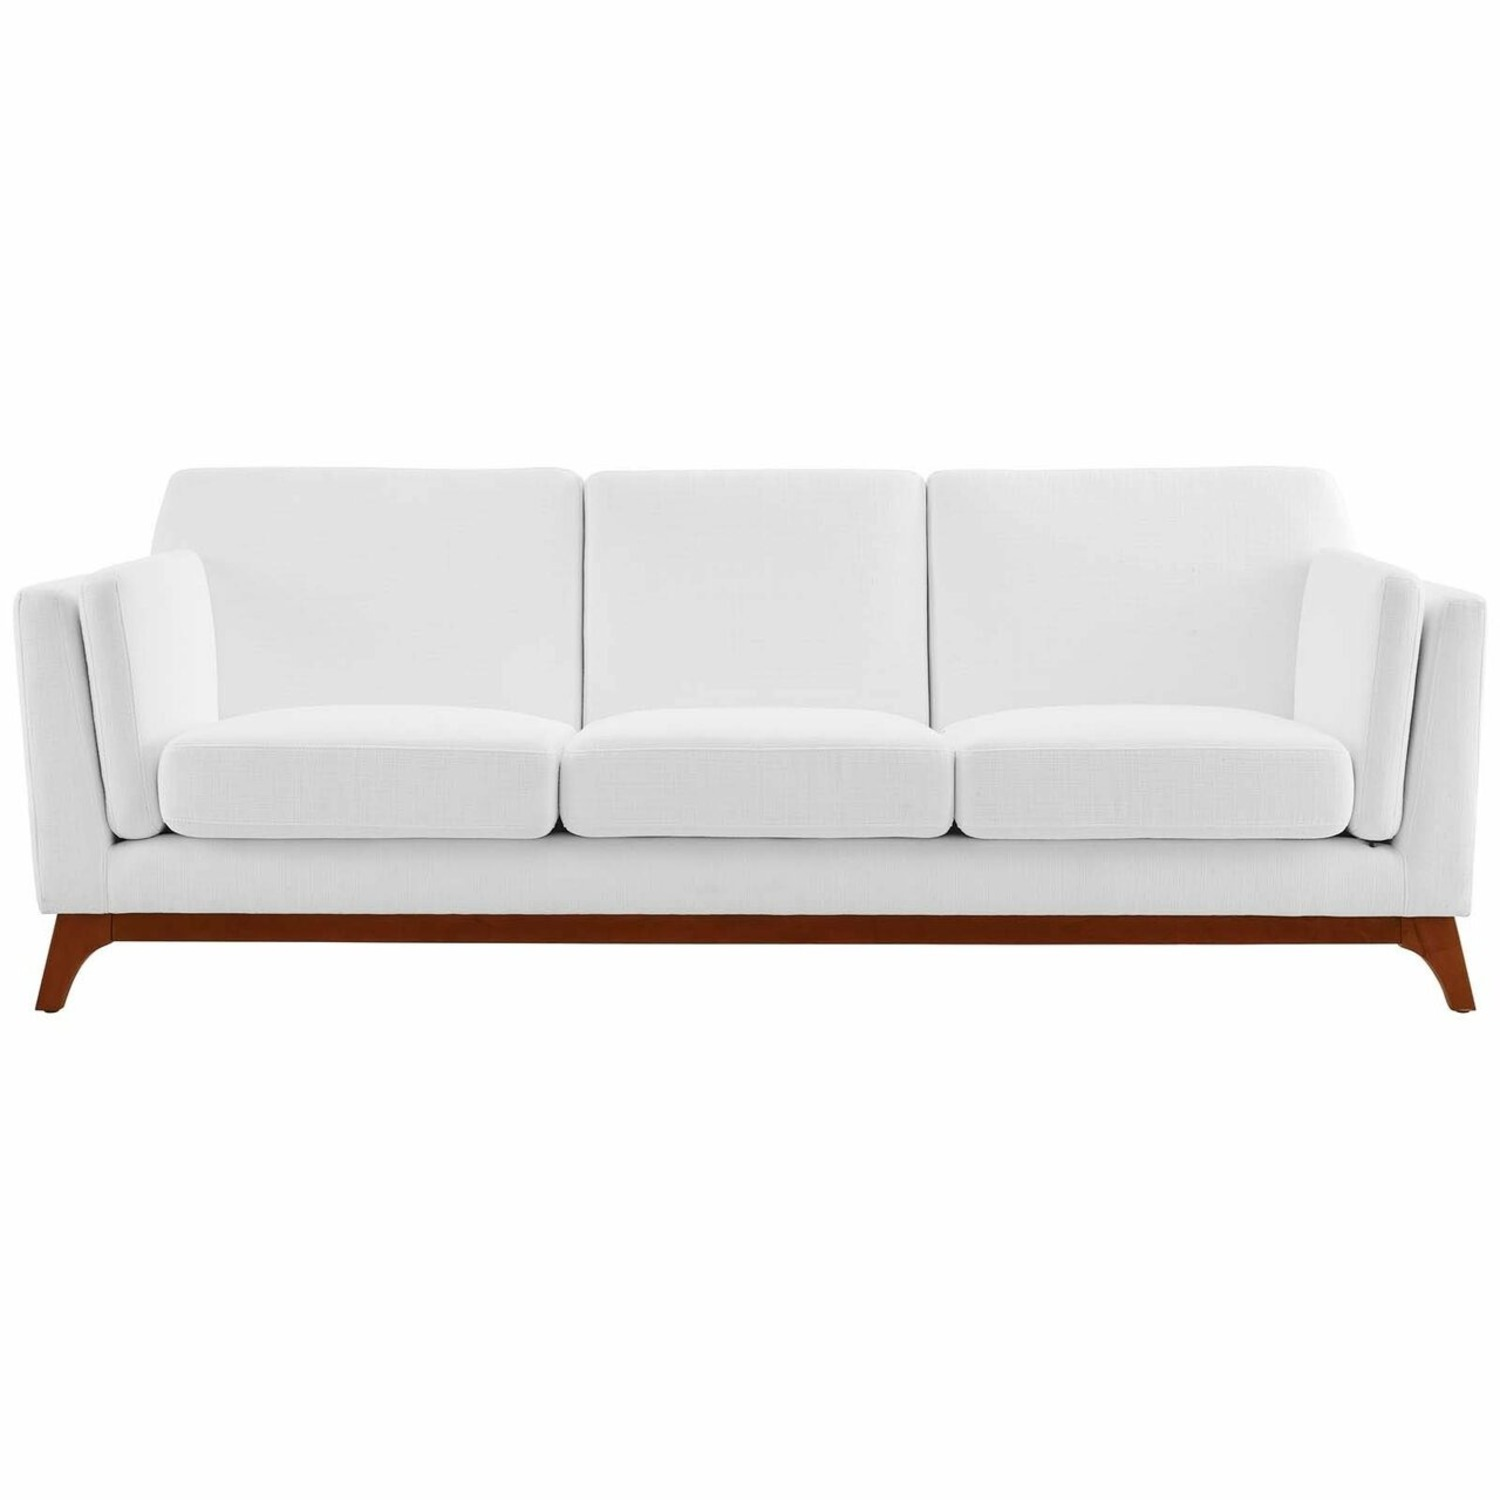 Sofa In White Fabric W/ Solid Wood Frame - image-1